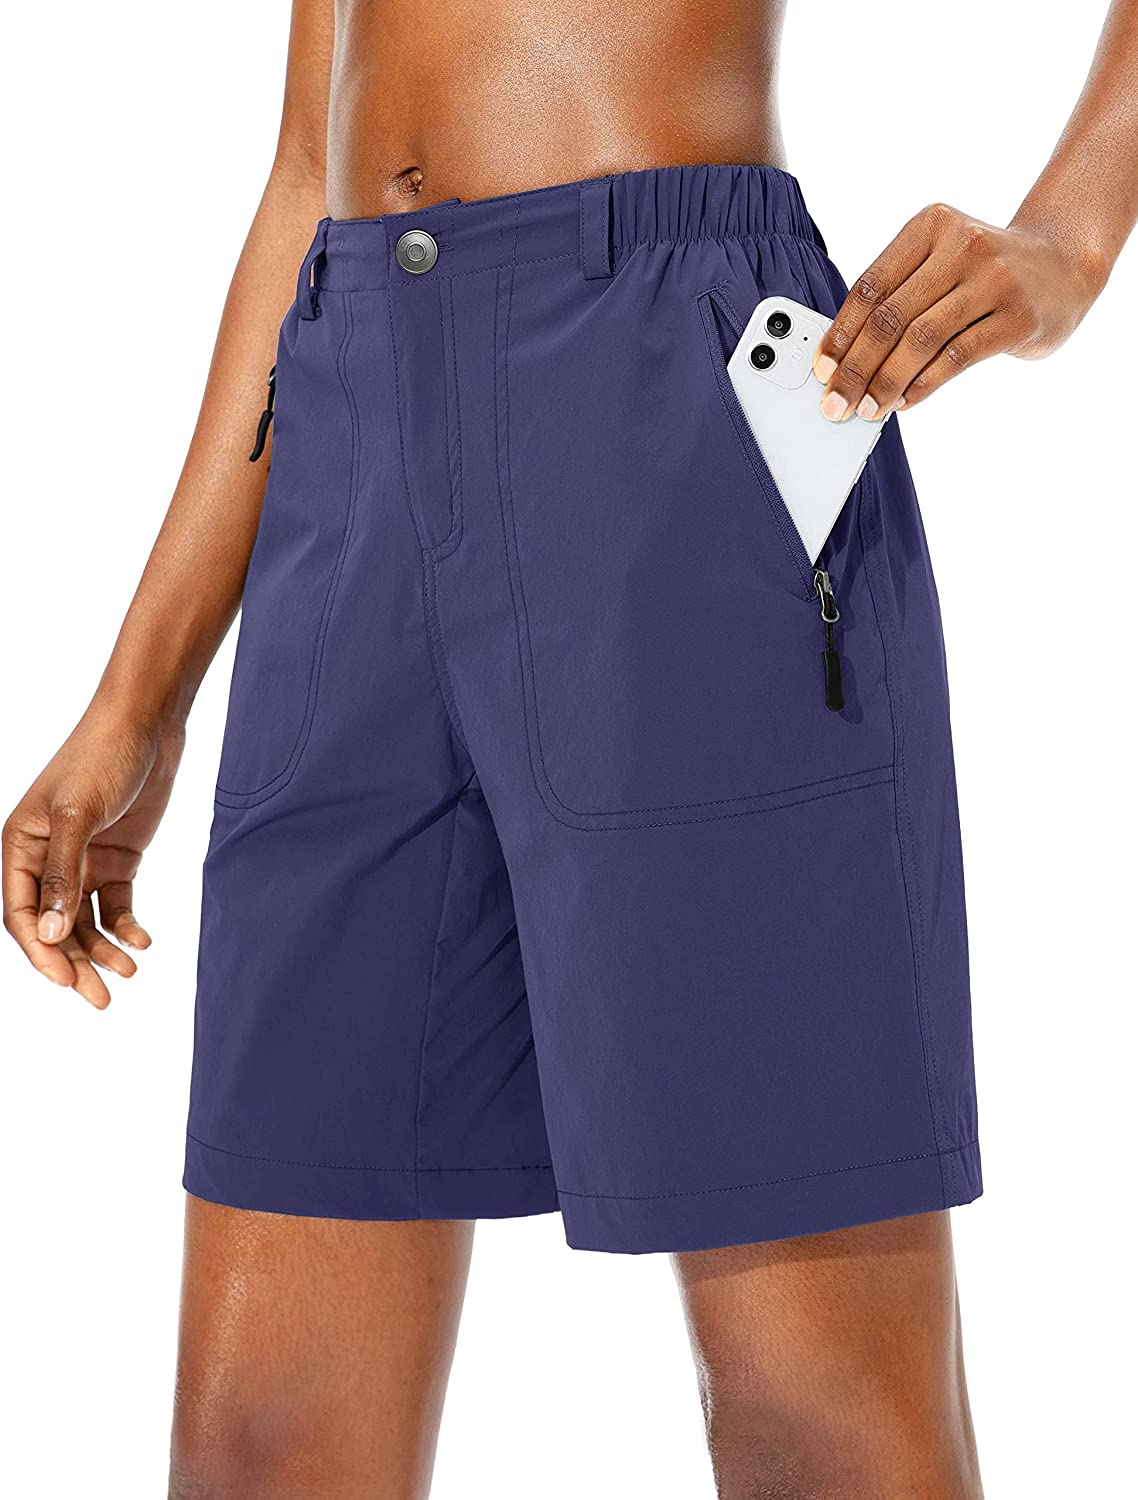 Max 63% OFF Pudolla Women's Hiking Cargo Shorts Travel Quick Dry Shor All stores are sold Summer